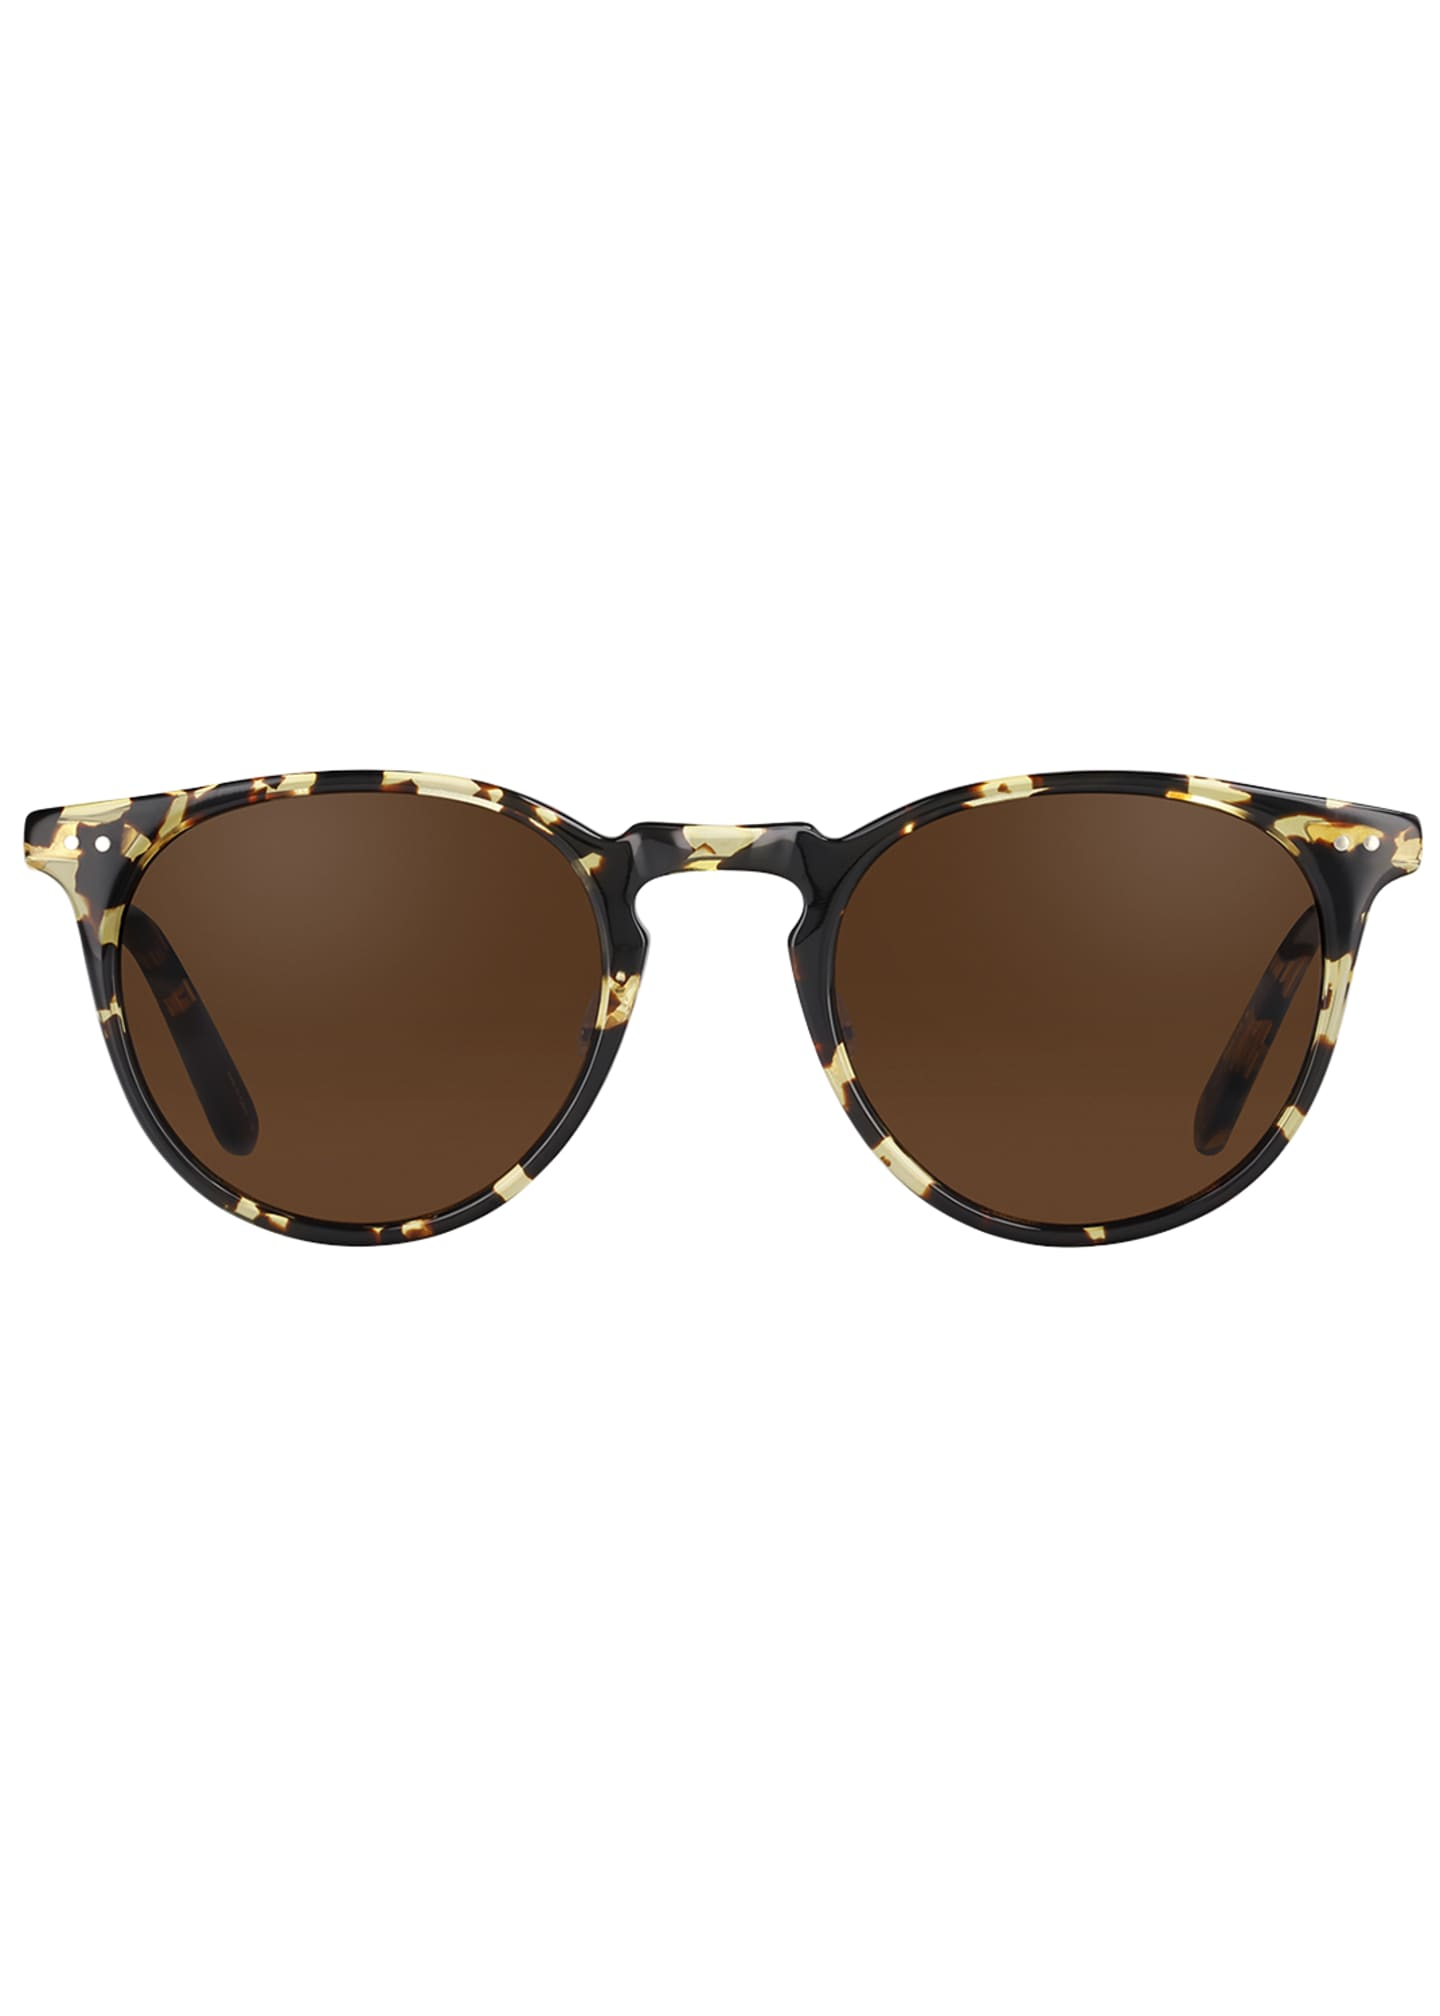 Image 2 of 2: Men's Ocean Block Tortoiseshell Sunglasses